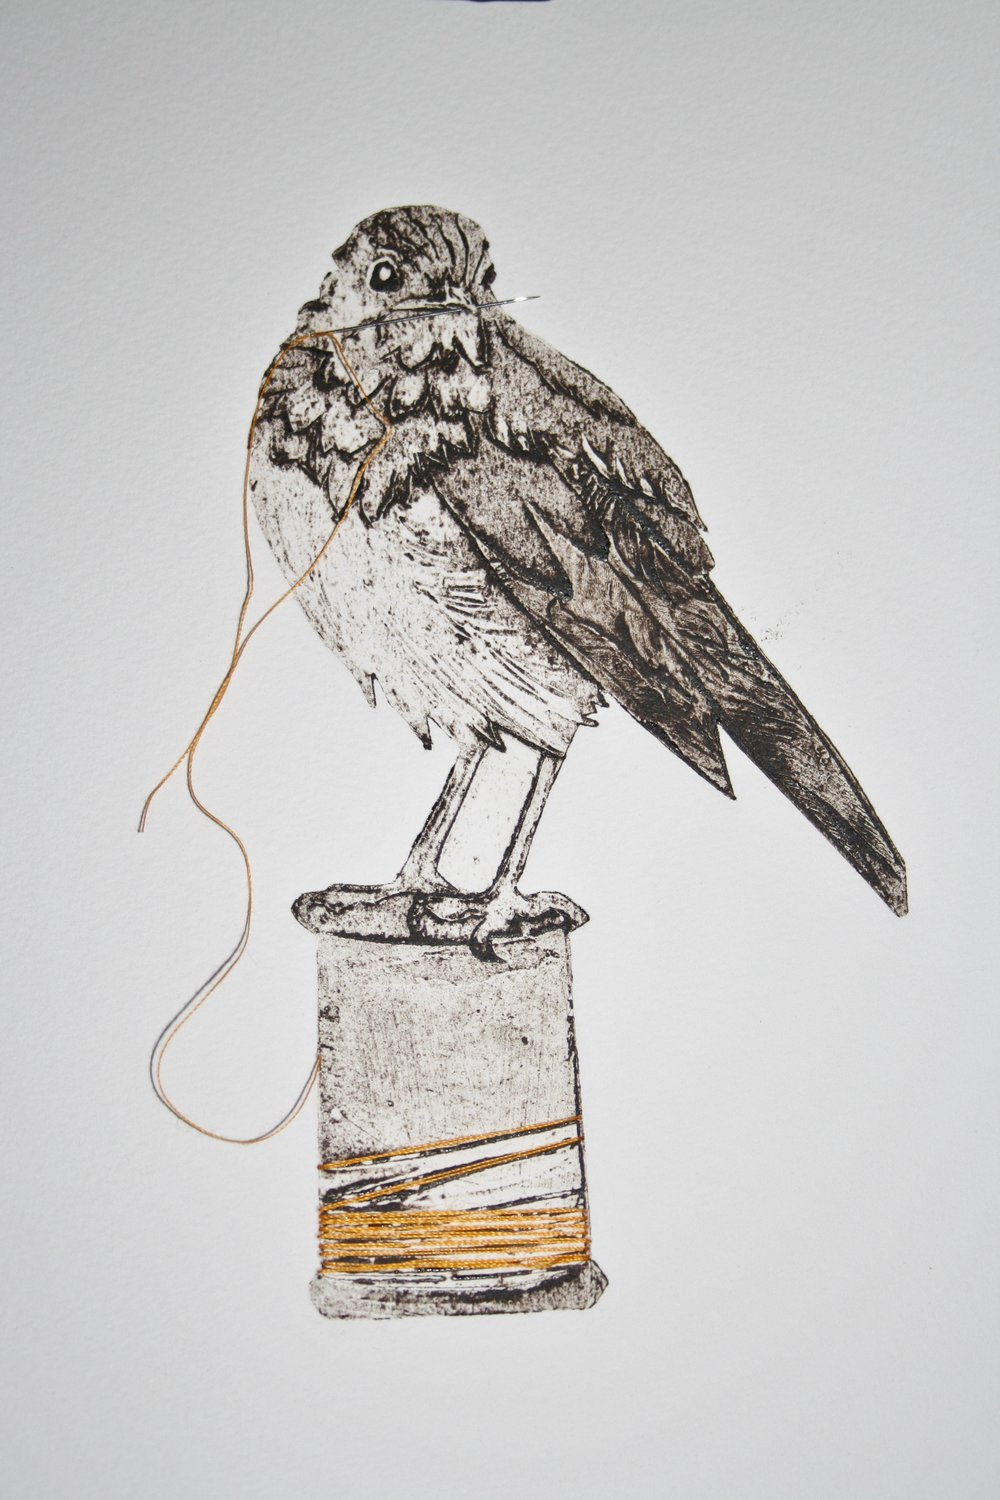 Sewing Bird   collagraph   30 x 43 cm  £260 framed